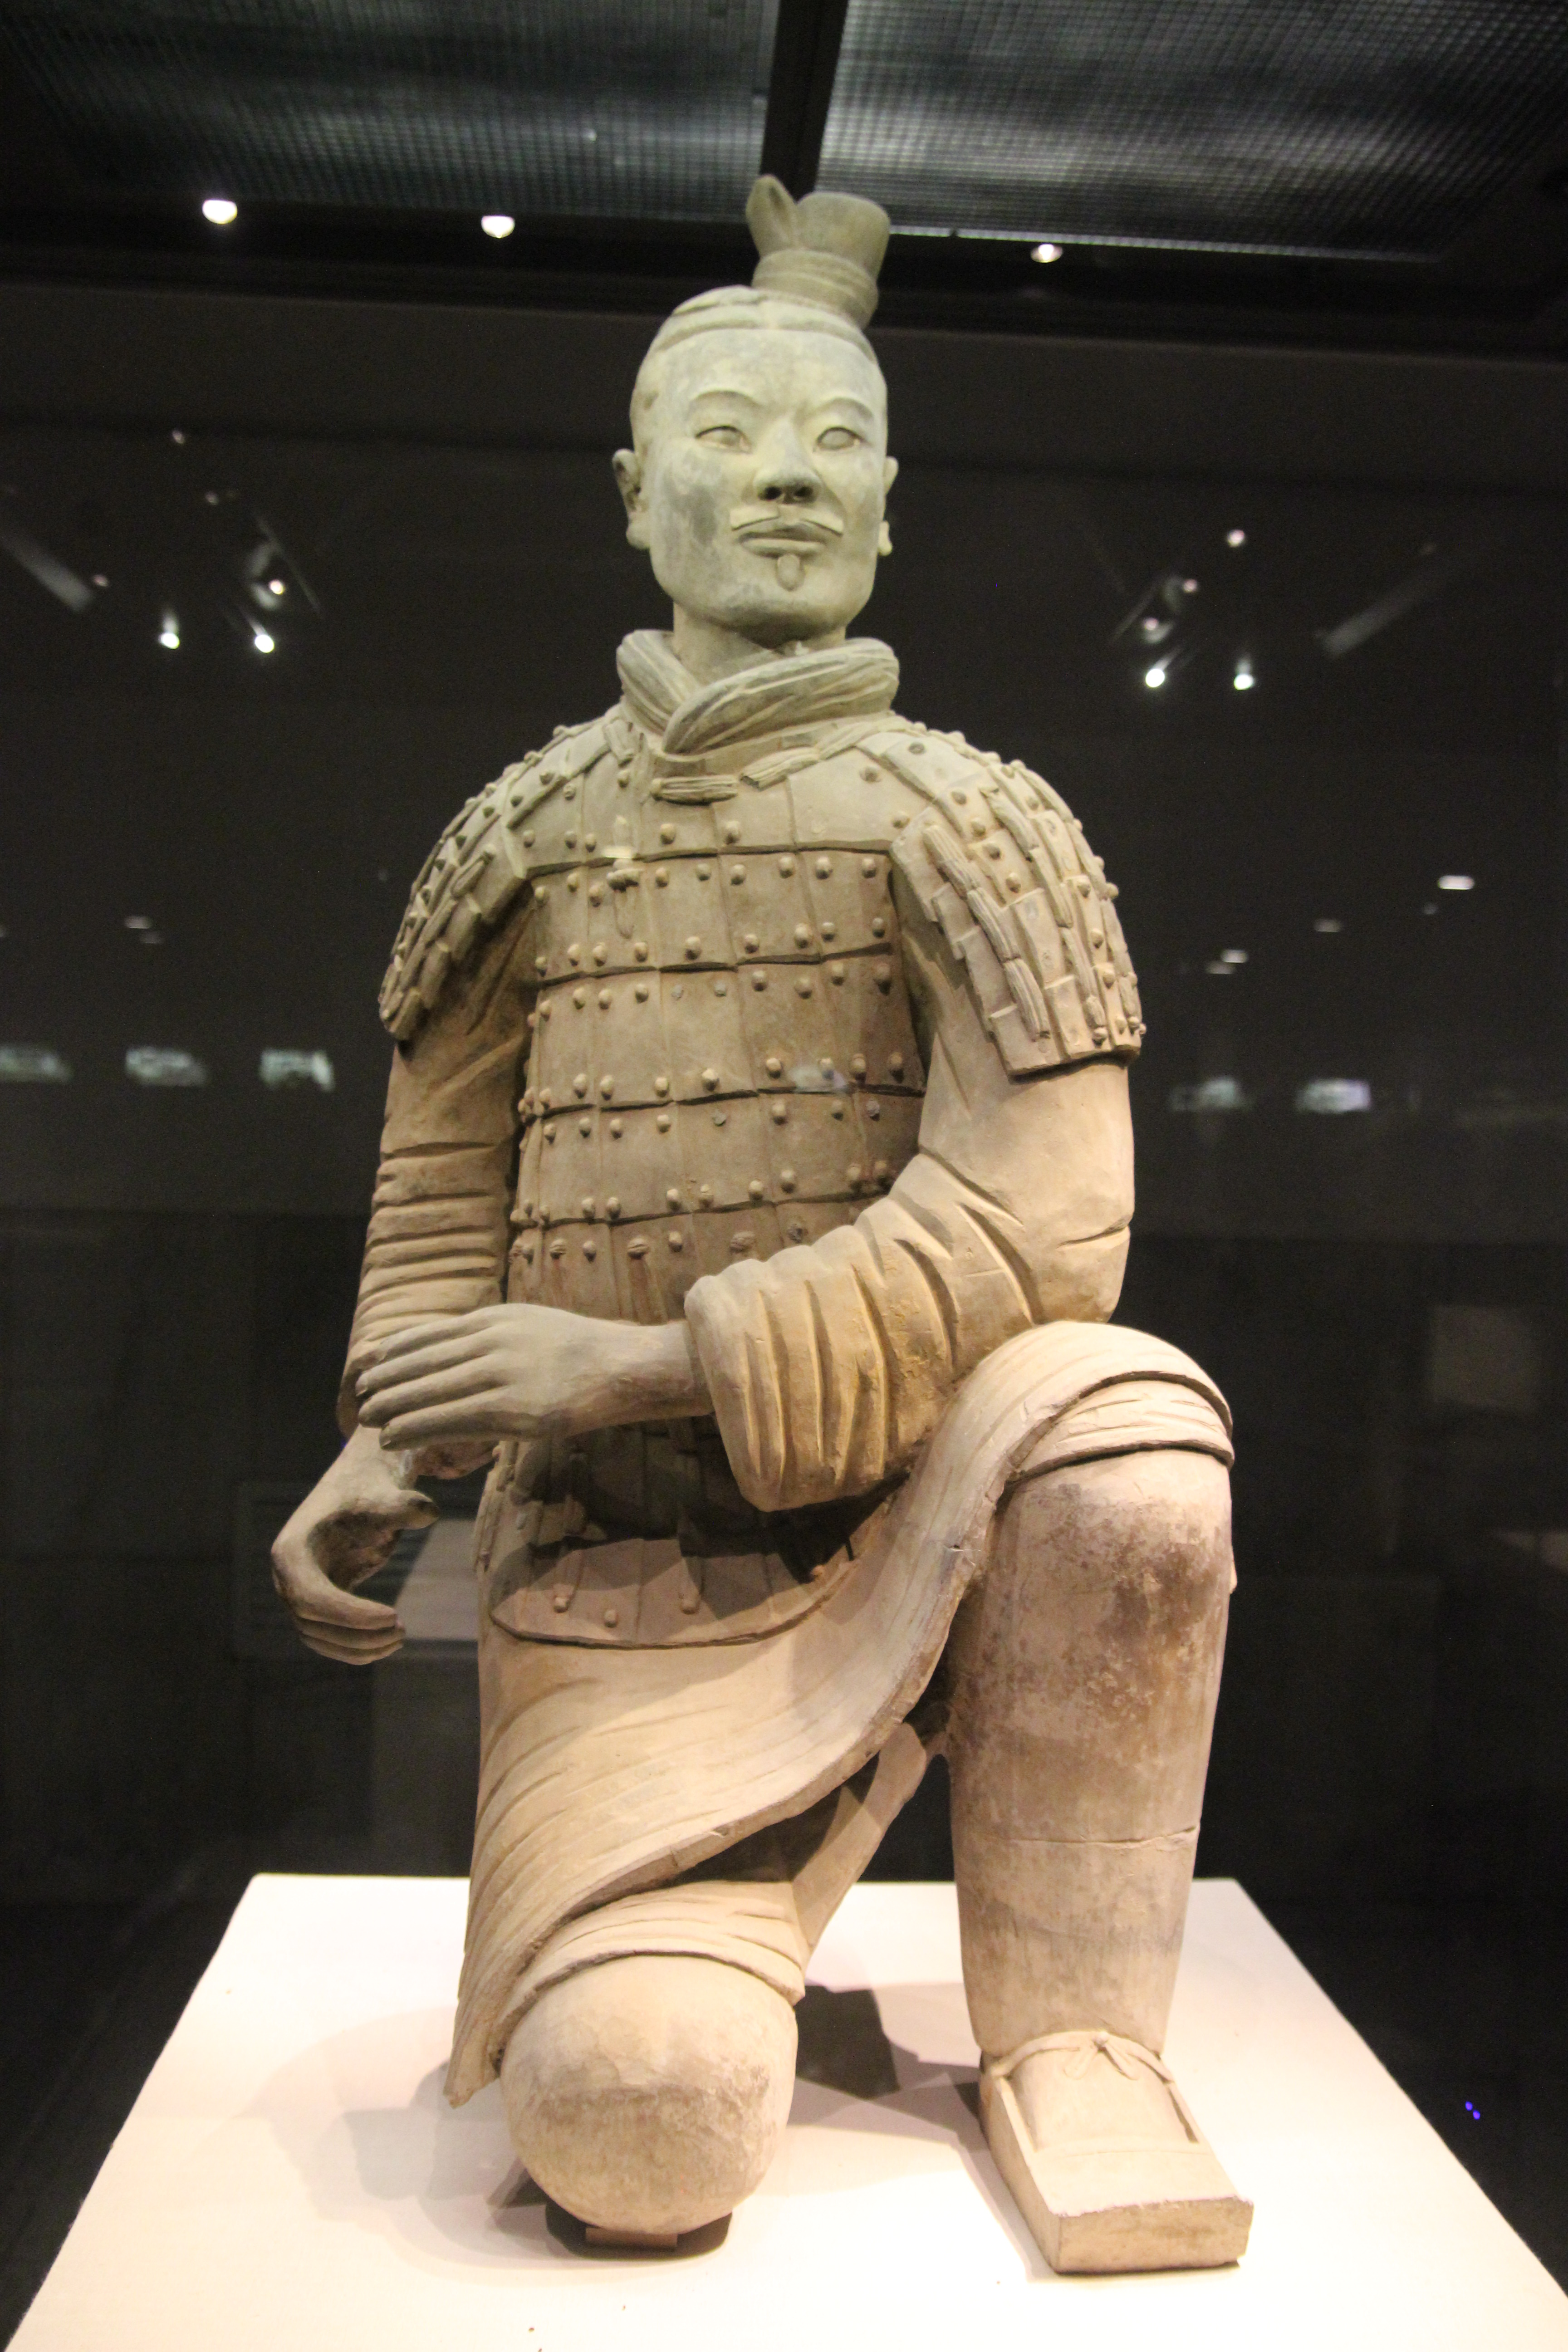 A visit to the terracotta army